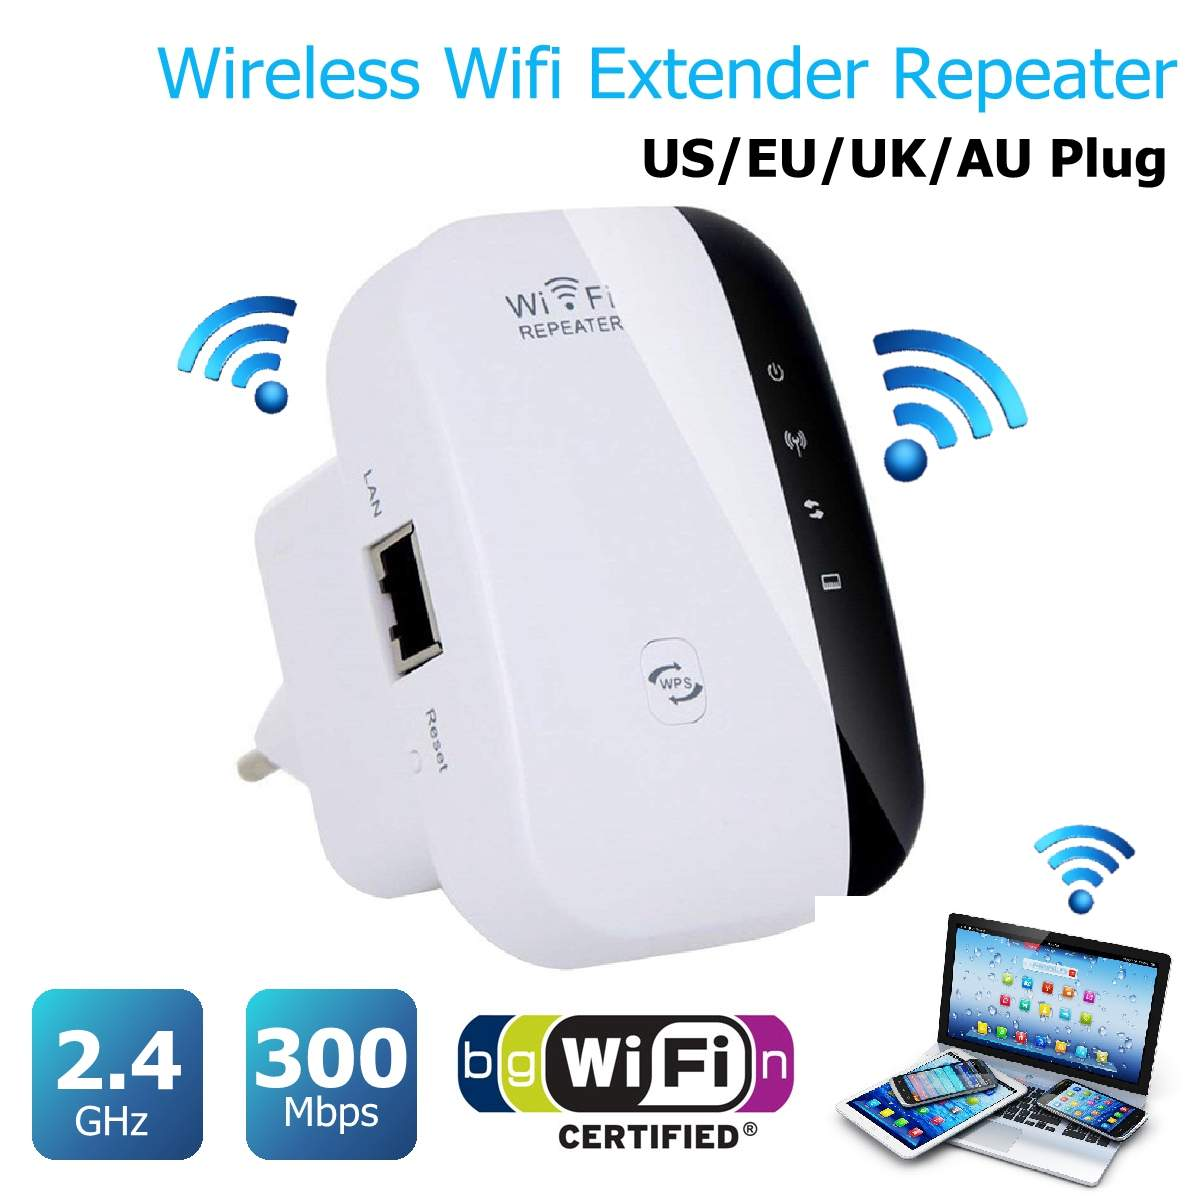 LEORY 300Mbps Wireless WiFi Repeater Extender WI-FI Signal Range Amplifier Booster Mini 2.4G Tp Link Wi Fi Hotspot Wlan Tplink